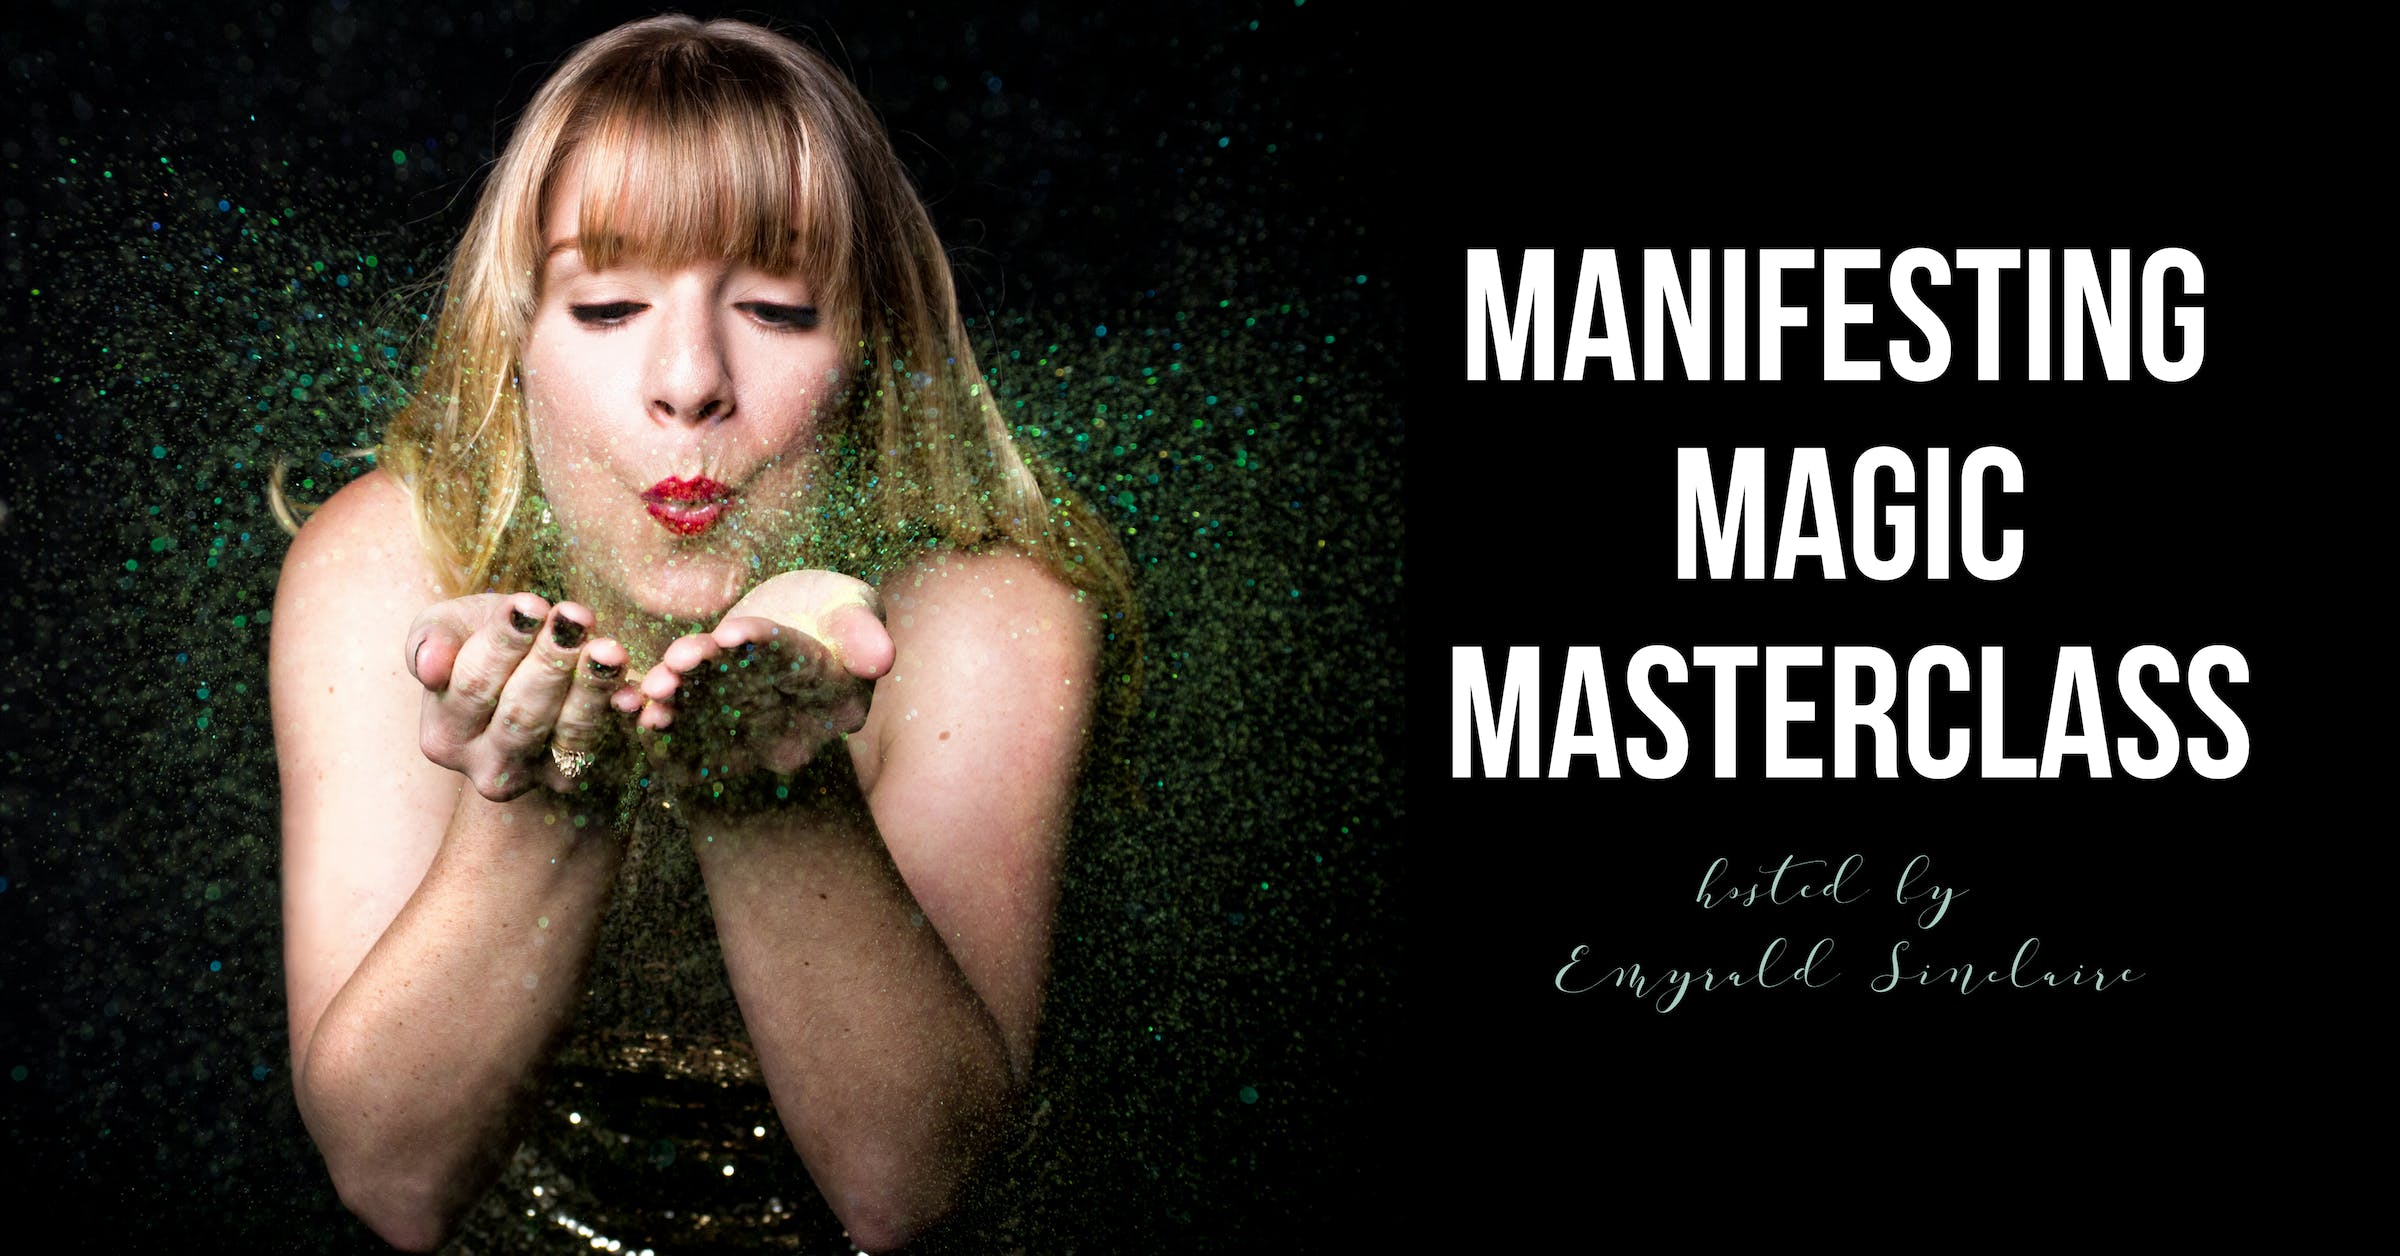 Manifesting Magic Masterclass (RECORDED Online Workshop - How To Manifest)